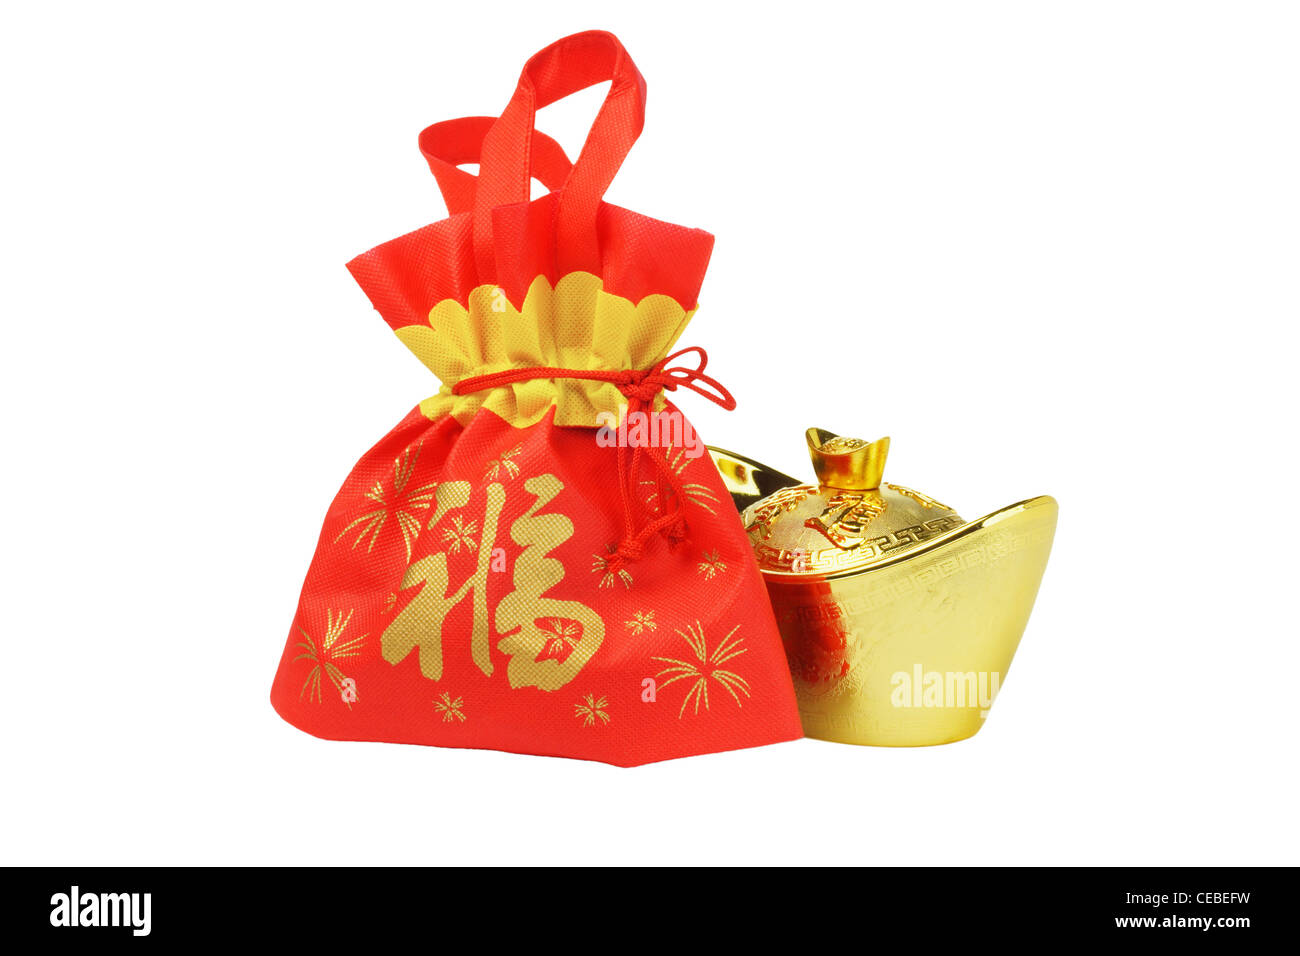 Chinese New Year Gift Bag and Gold ingot Ornament on White Background - Stock Image